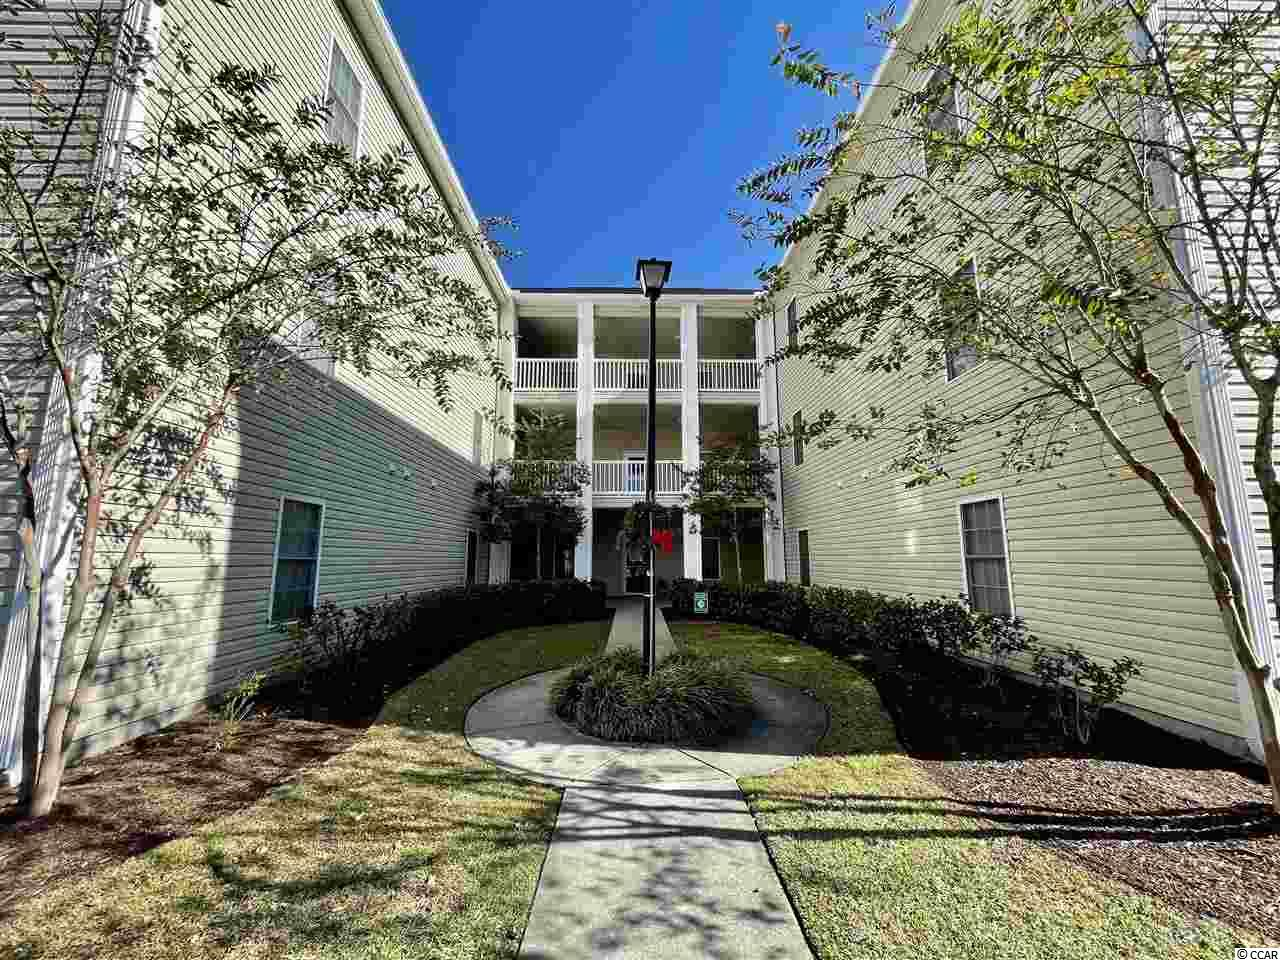 This is a bright and airy 2 bedroom condo located on the edge of Surfside Beach and Myrtle Beach. This floorplan has a nice flow as you enter through the foyer and drawn the screened balcony past the living room. A new hvac and refrigerator were installed last year. This spacious end unit condo comes completely furnished. Either a short stroll to the pool that over looks pond or a 2.5 mile drive to the ocean makes it a perfect way to spend your day. Also near by is Market Commons which hosts some of the best boutique shopping and dinning in our area.